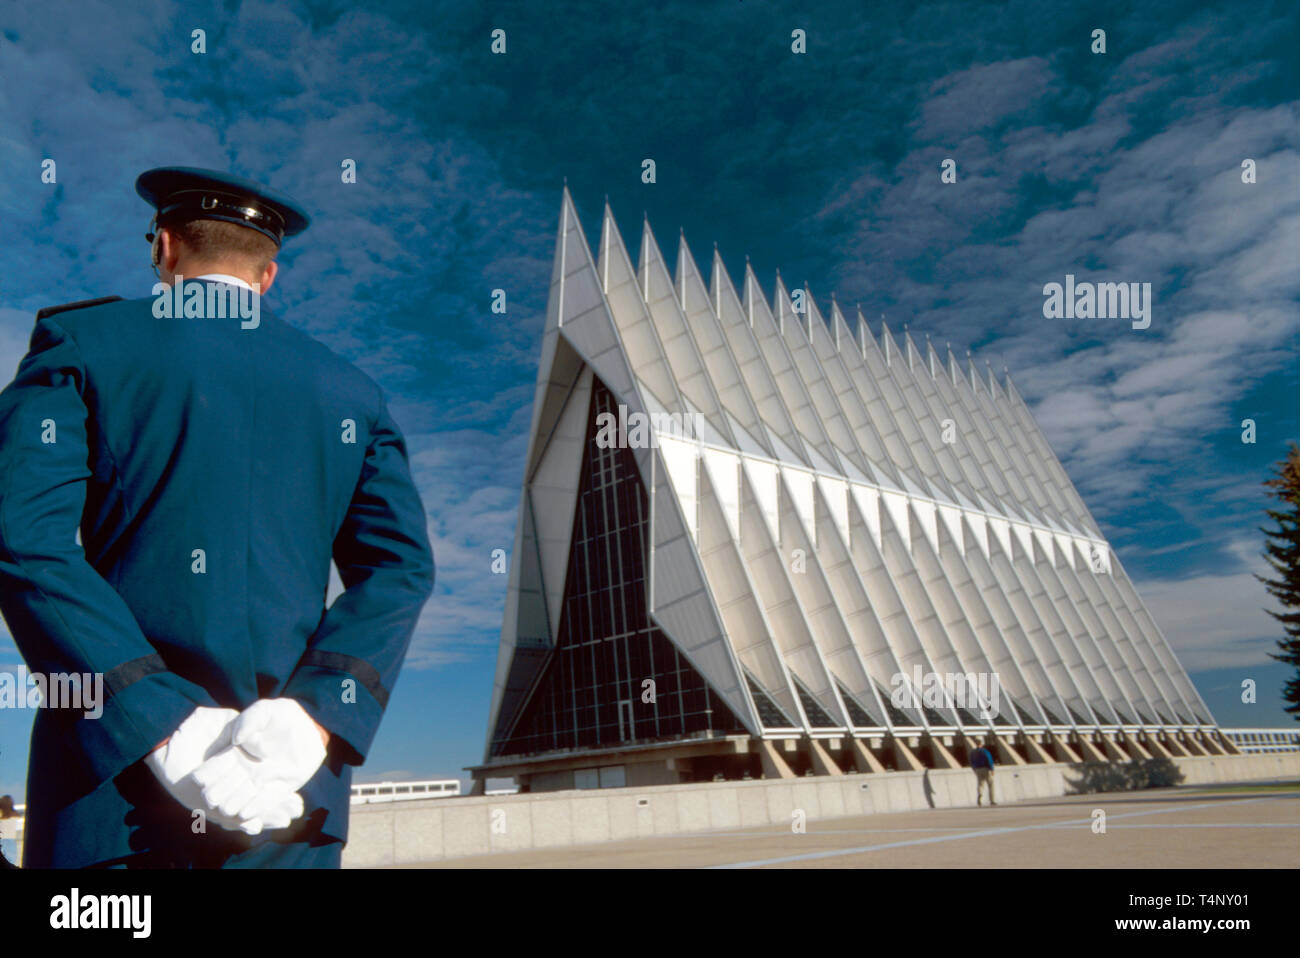 Colorado Colorado Springs US Air Force Academy Chapel foot spires all faiths cadet on left - Stock Image